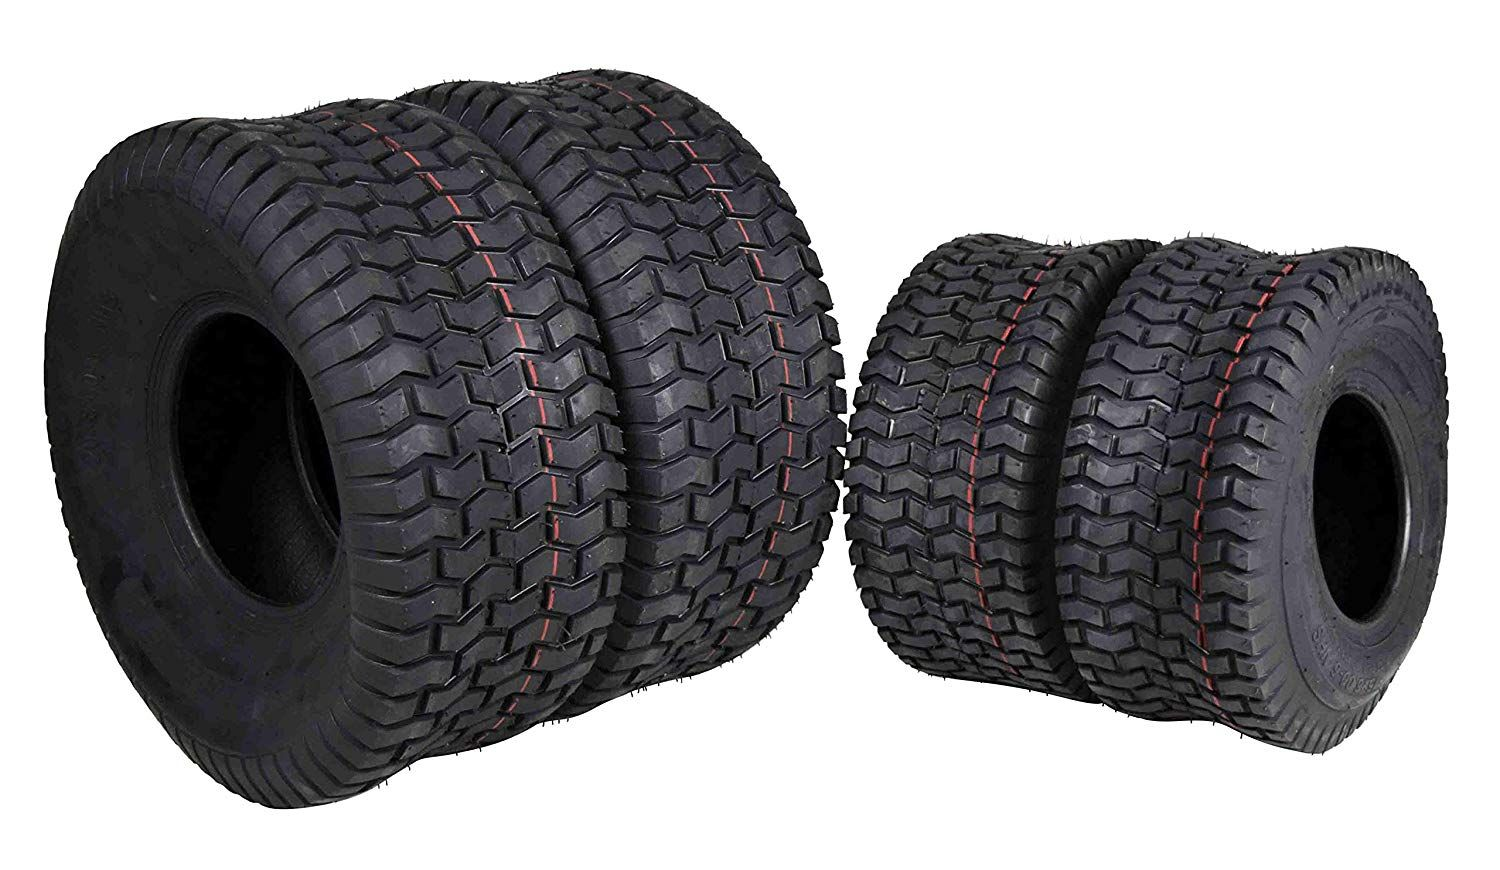 Massfx 4 New Lawn Mower Tires 15x6 6 20x8 8 4 Ply Four Pack Lawn And Garden Check This Awesome Product By Going To T Lawn Mower Tires Lawn And Garden Mower